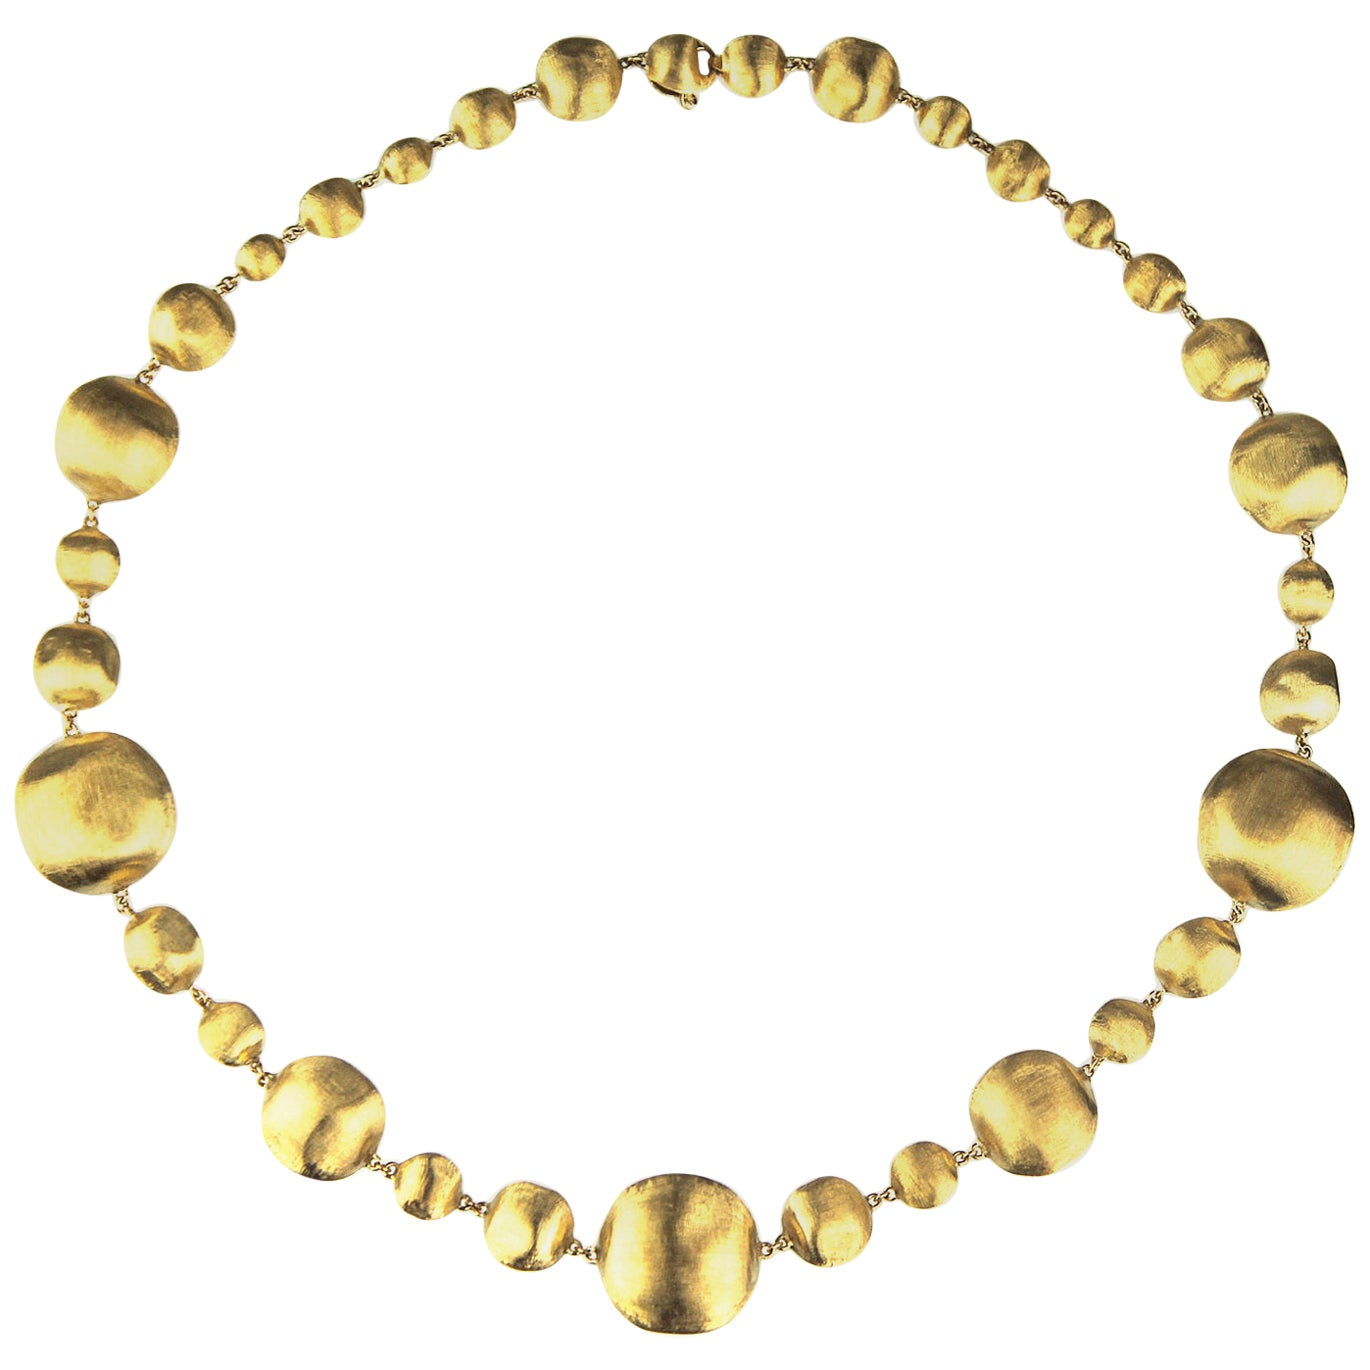 Marco Bicego Africa, 18 Karat Yellow Gold Single Strang Mixed Beads Necklace